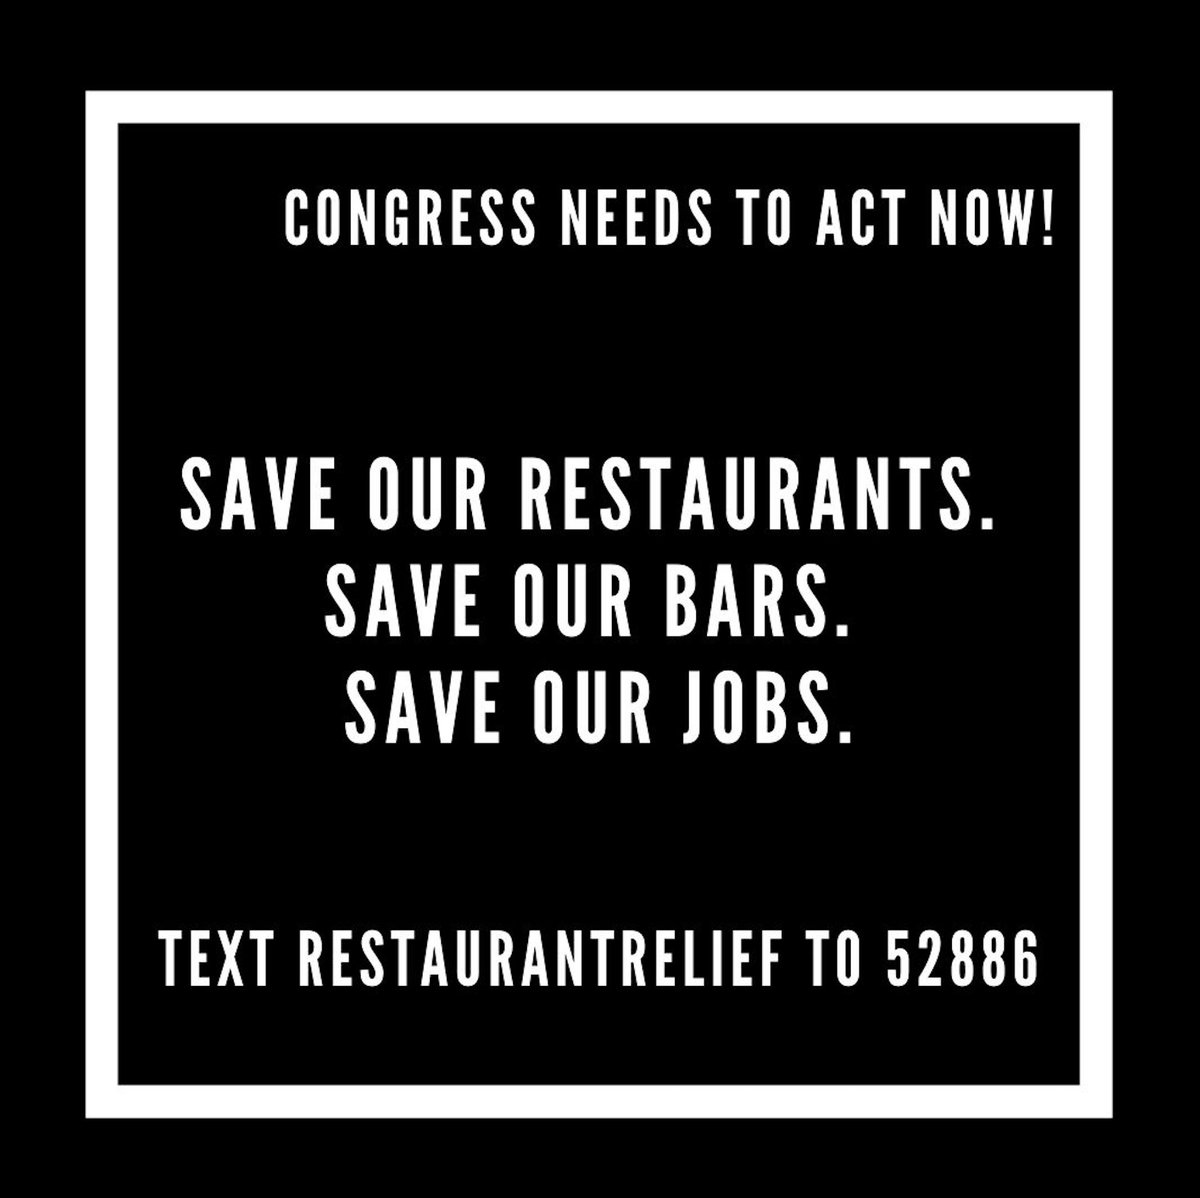 Restaurants both small and large, are the cornerstone of our communities. They connect people, provide job opportunities, and have been key players for giving back and supporting those in need. Let your voices be heard, tell Congress to ACT NOW #saveourrestaurants https://t.co/ITRMR4XcQX